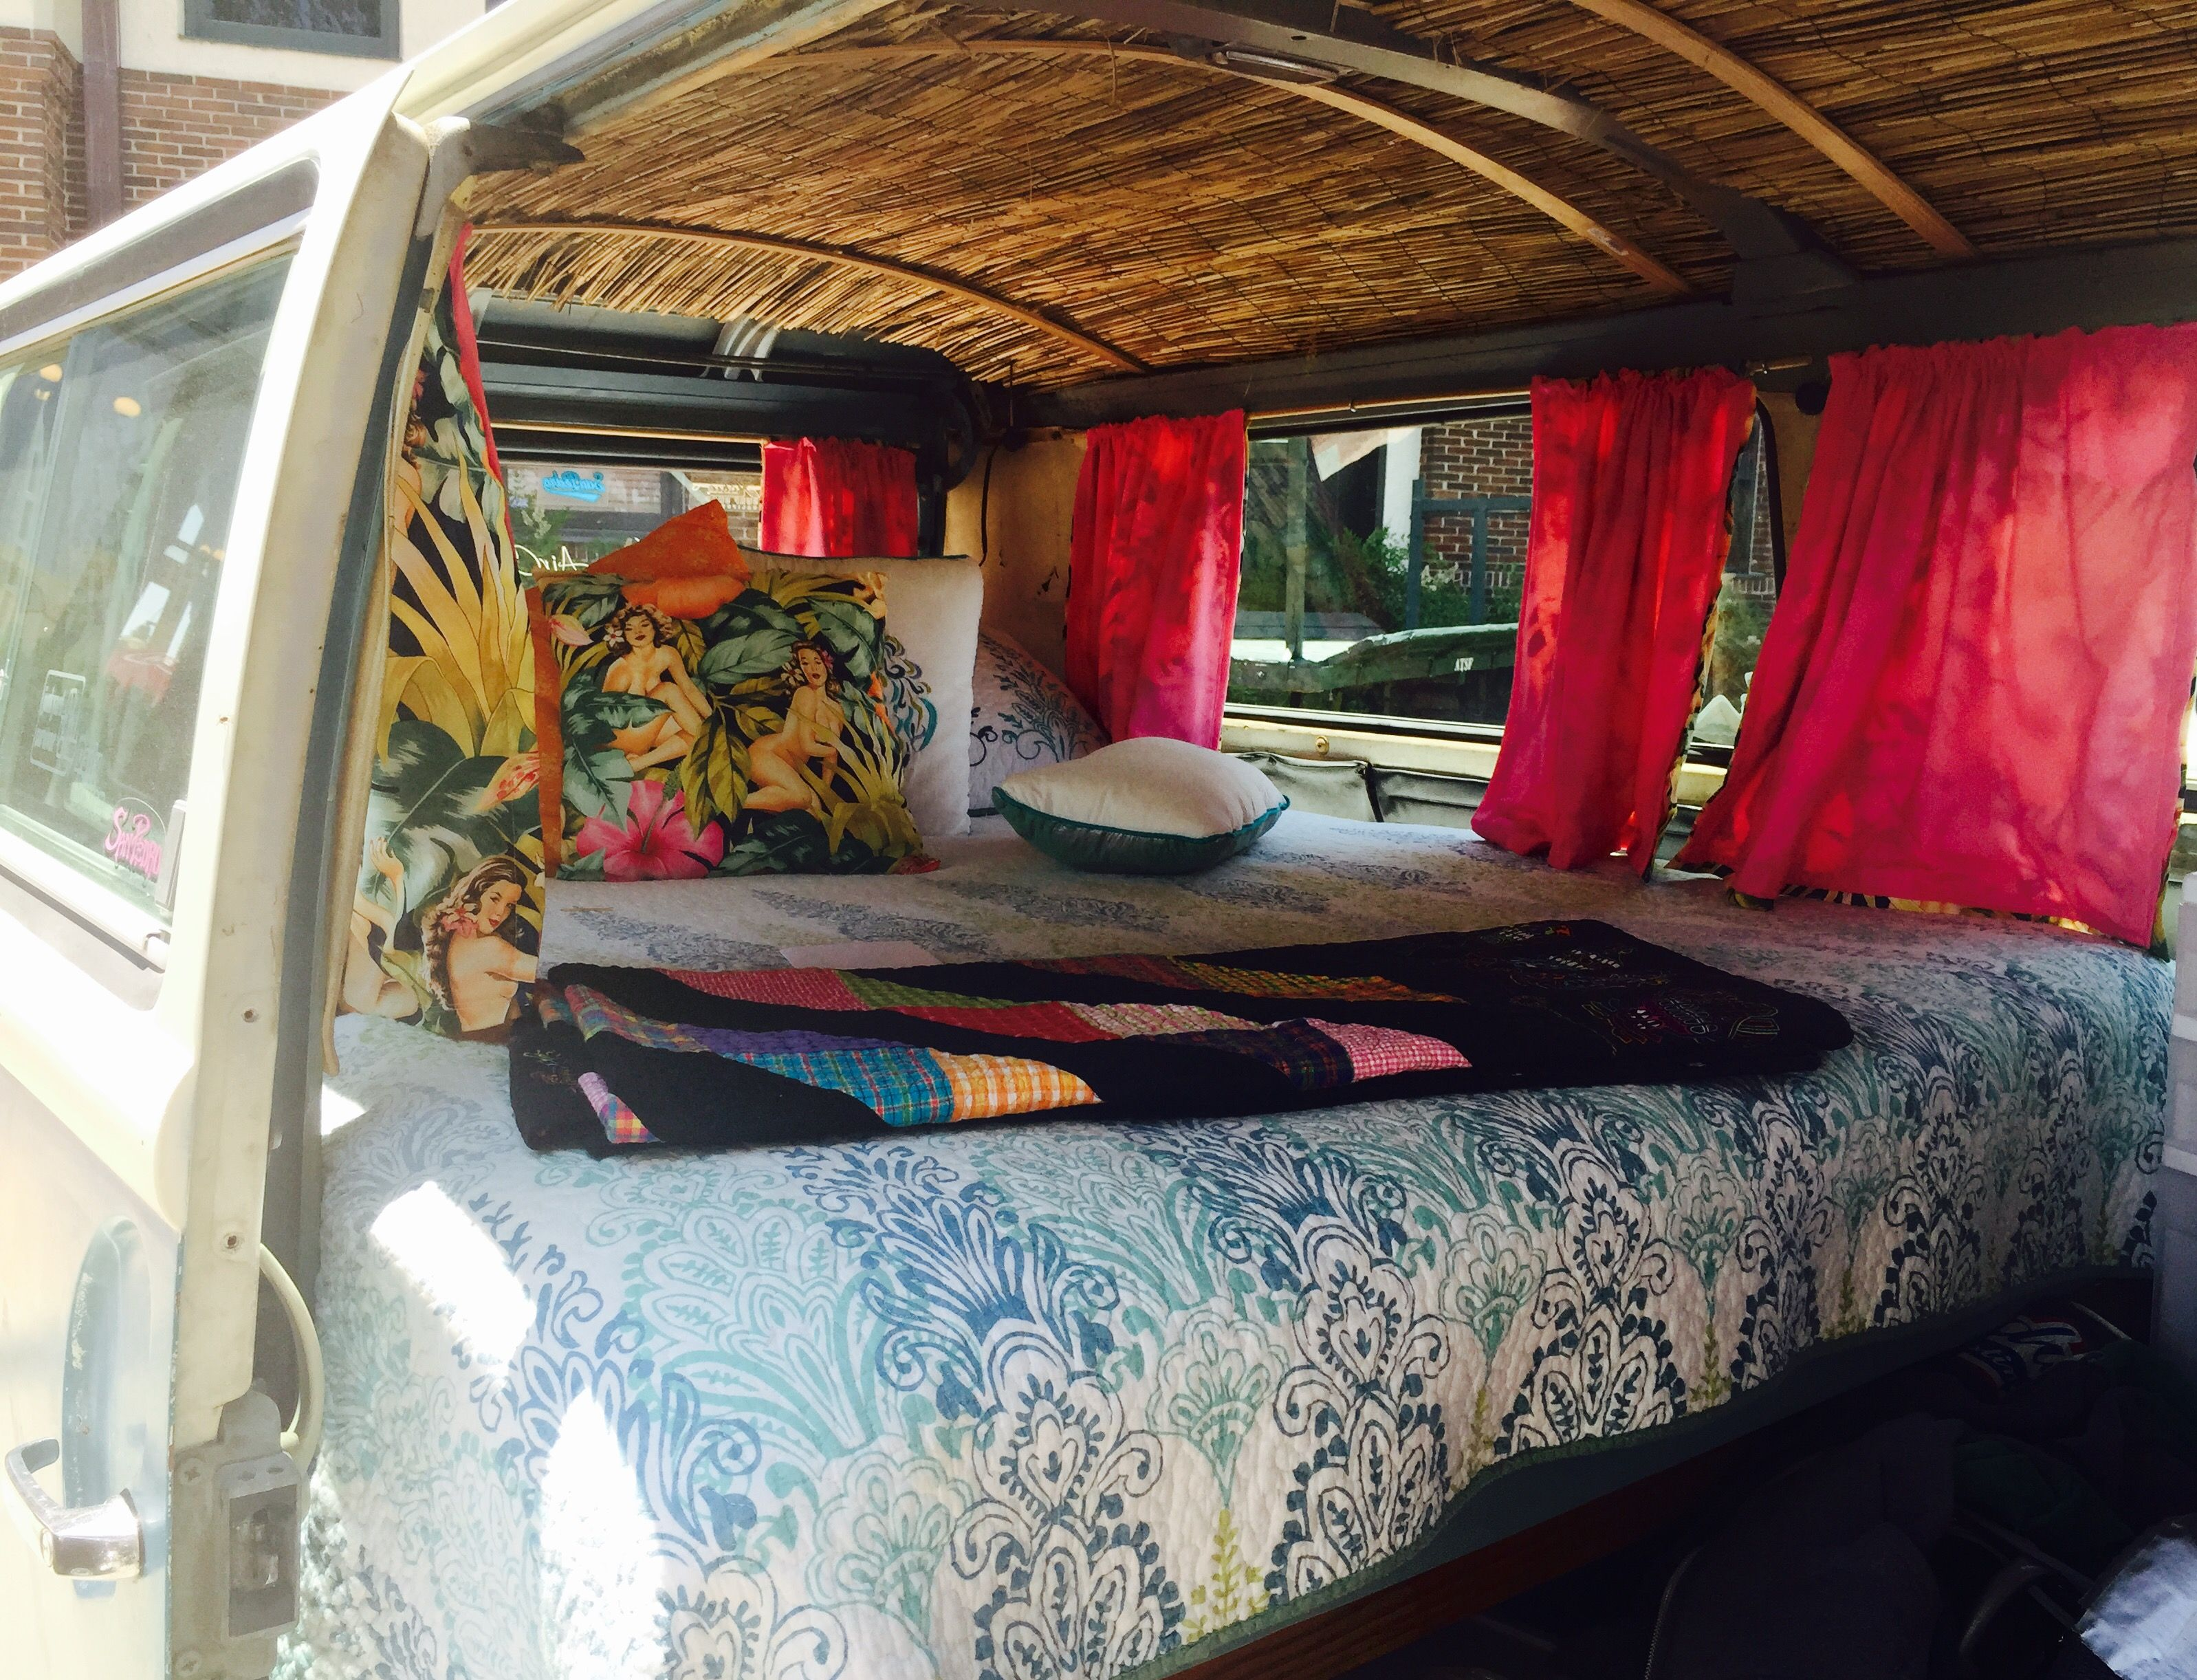 Volkswagen Bus Interior From The Temple Tx Volkswagen Show Love The Tropical Theme And Bamboo